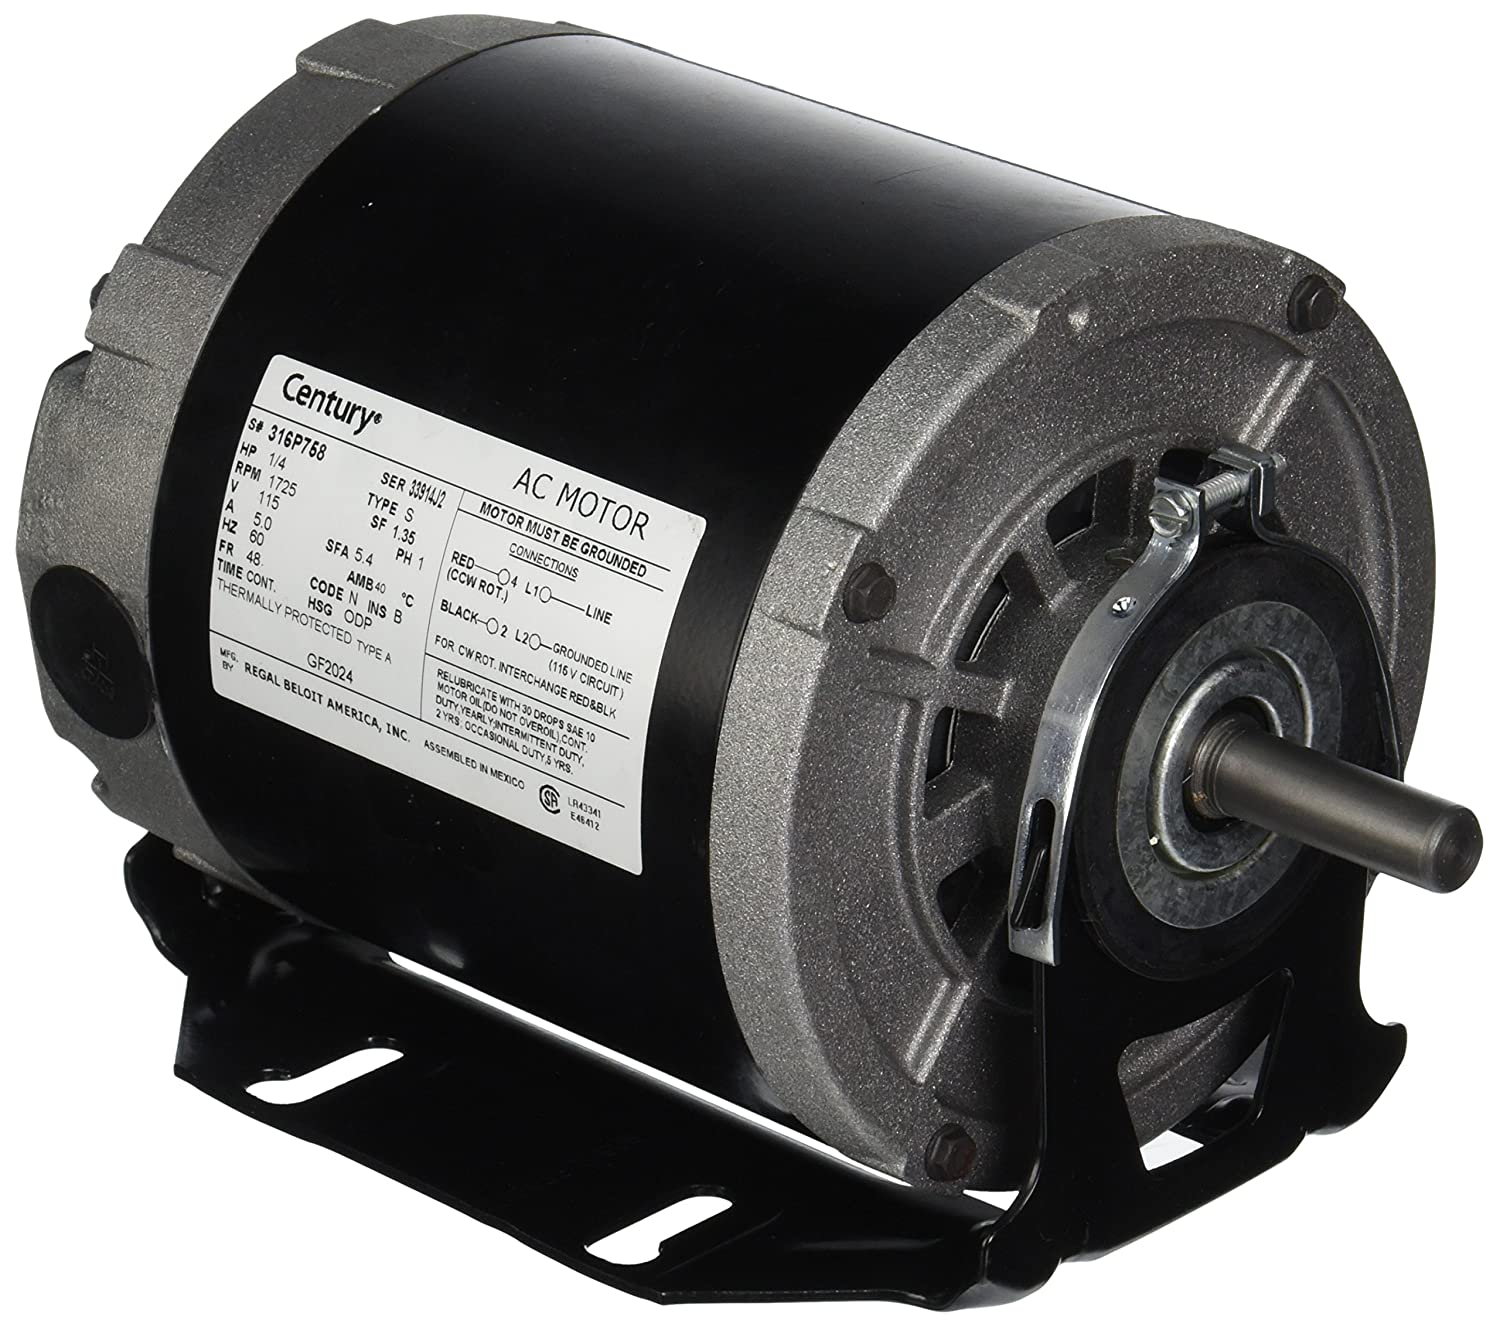 91Ri%2BTSy dL._SL1500_ a o smith gf2024 1 4 hp, 1725 rpm, 115 volts, 48 56 frame, odp  at edmiracle.co